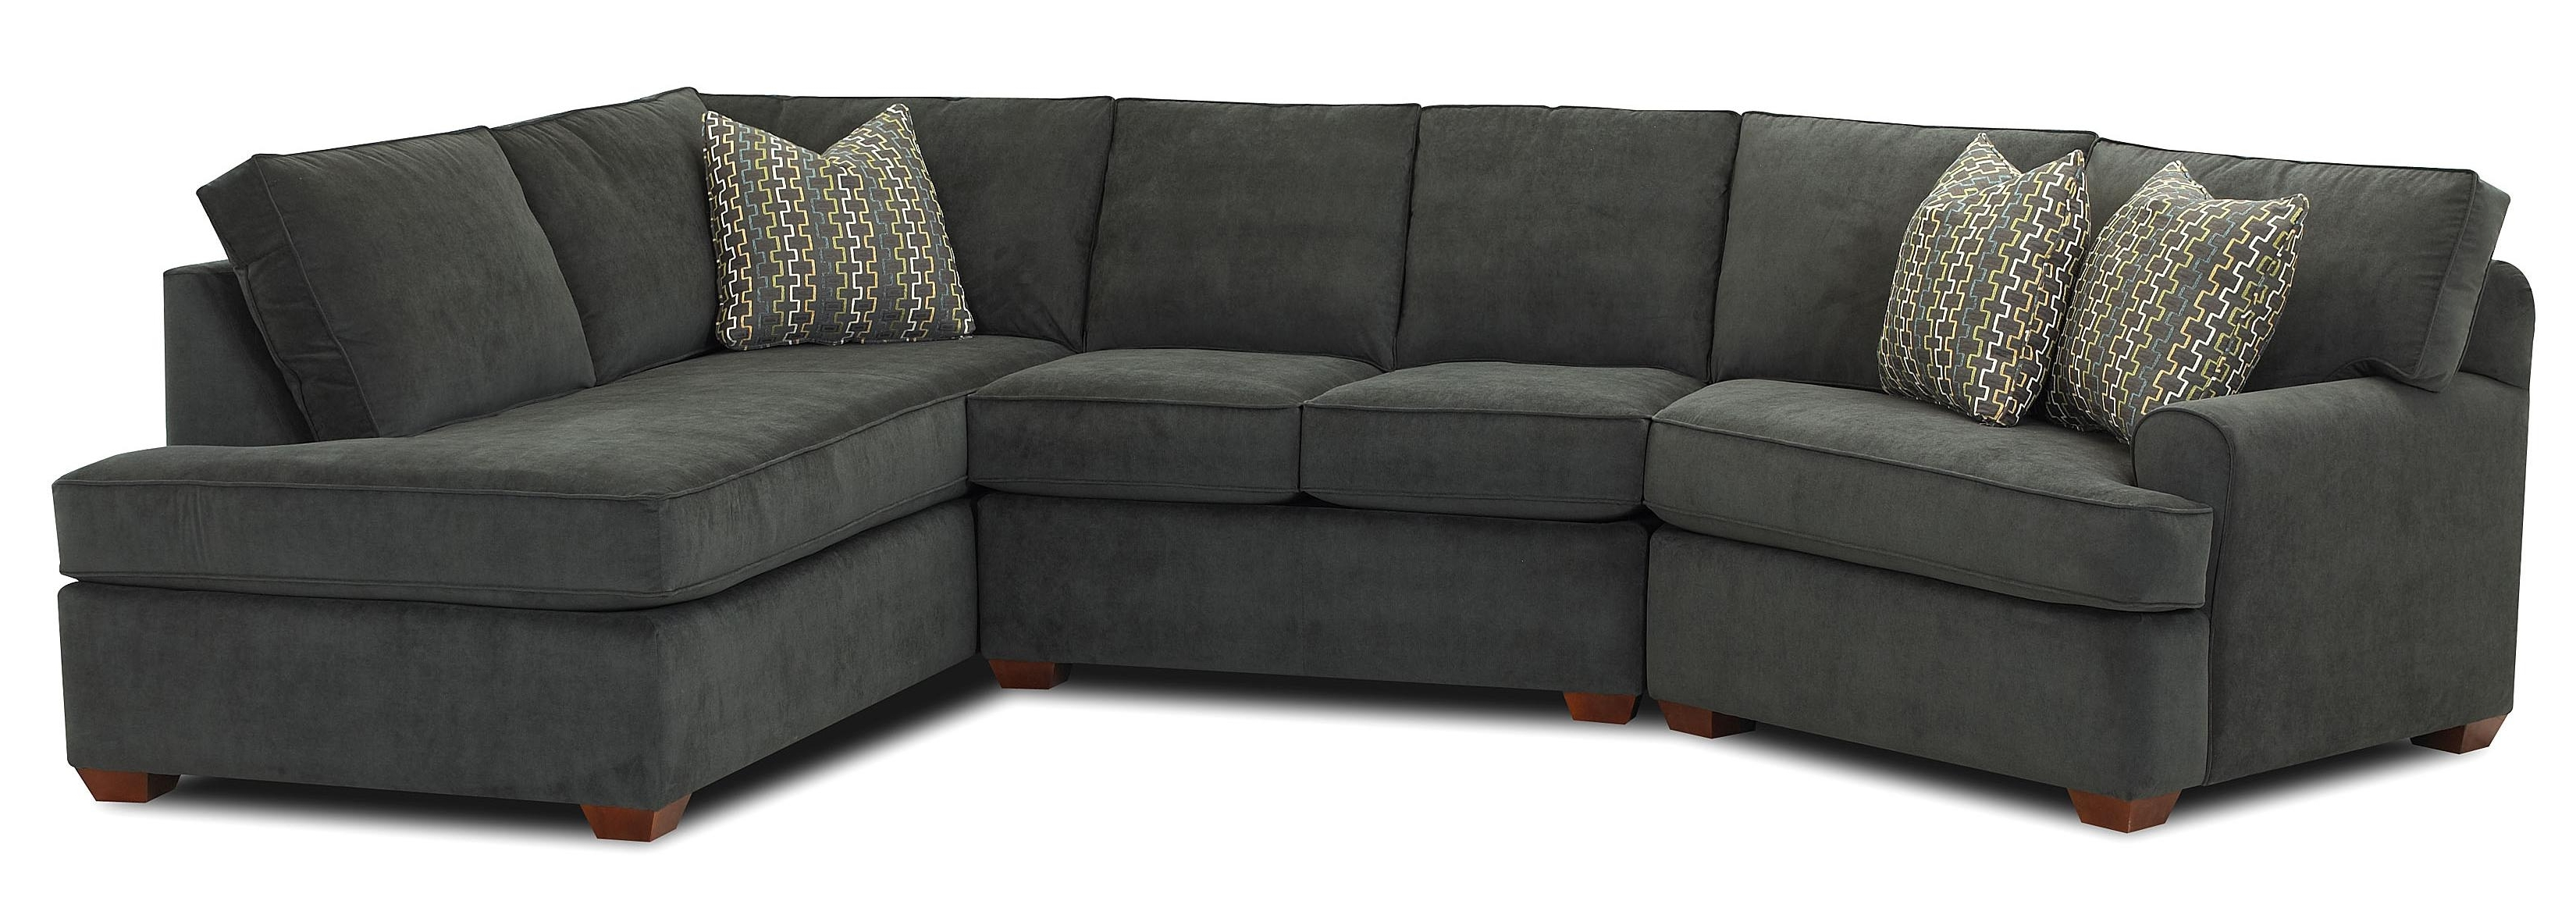 Small Sofas With Chaise Inside Newest Sofa ~ Awesome Small Sectional Sofa With Chaise Hayward Small Ash (View 11 of 15)